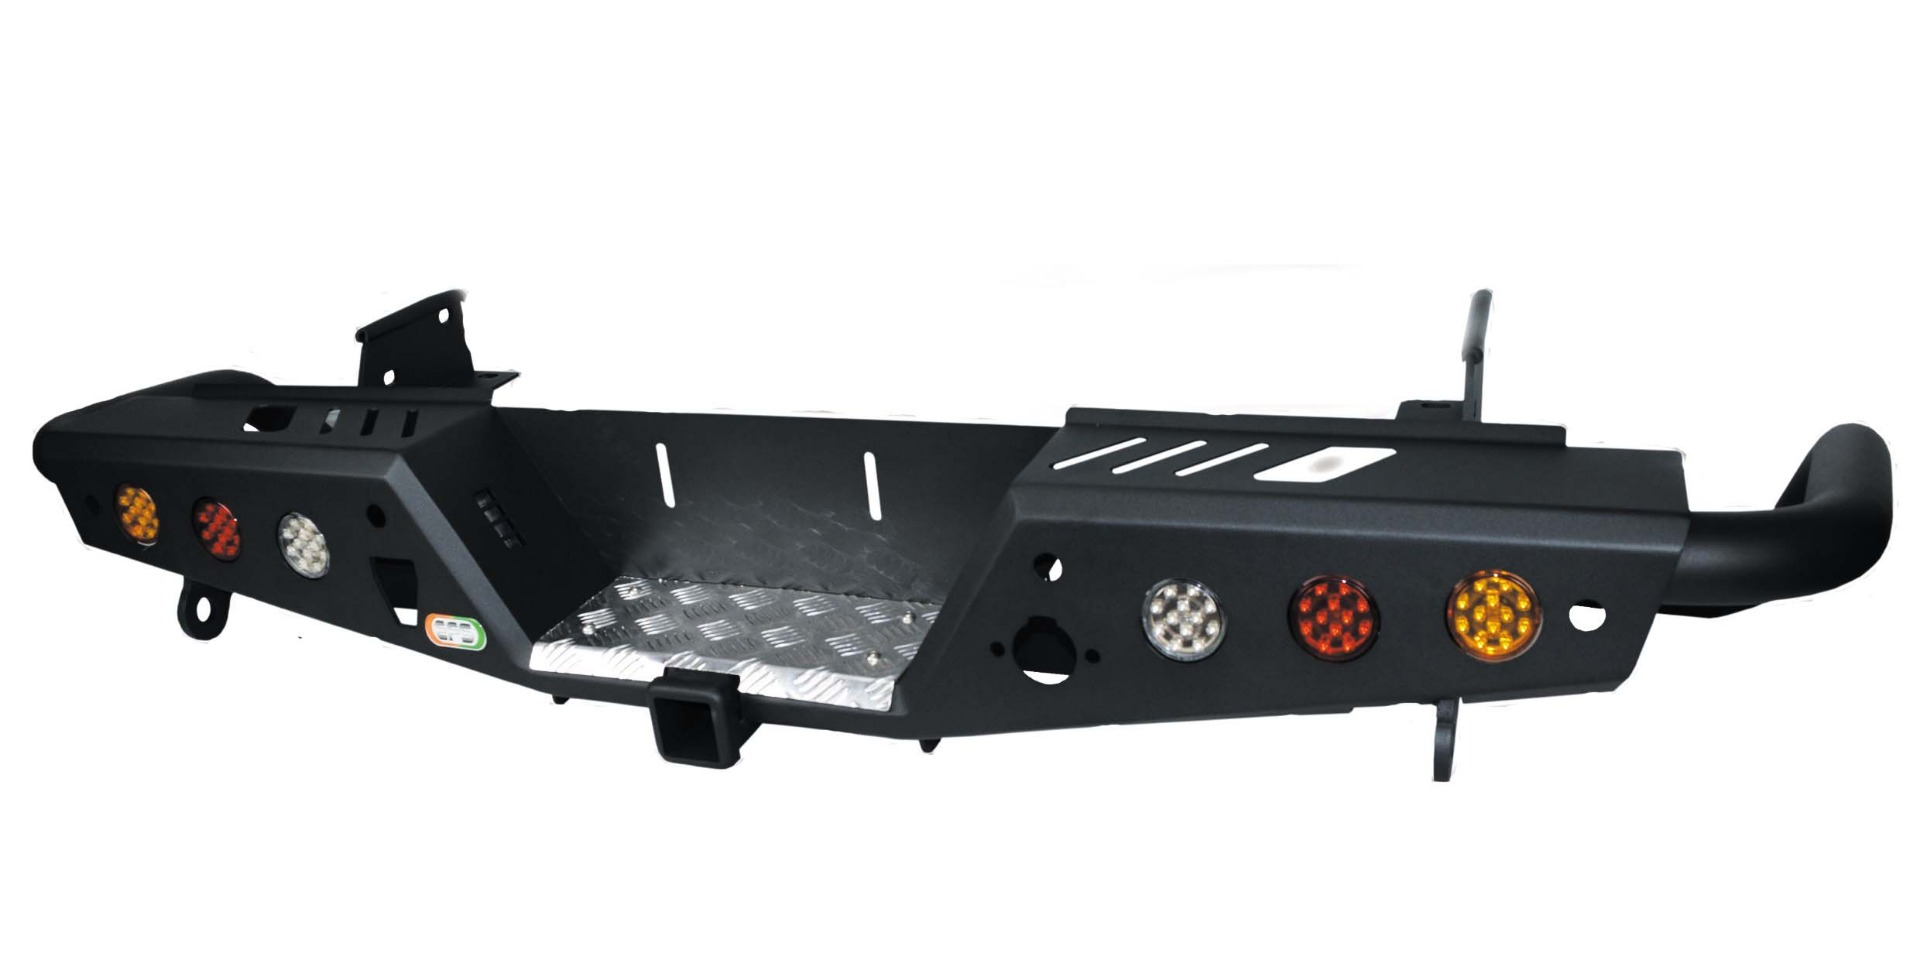 VMN offers rear step tow bars to provide maximum protection against your vehicle's rear panels when towing and offroad.